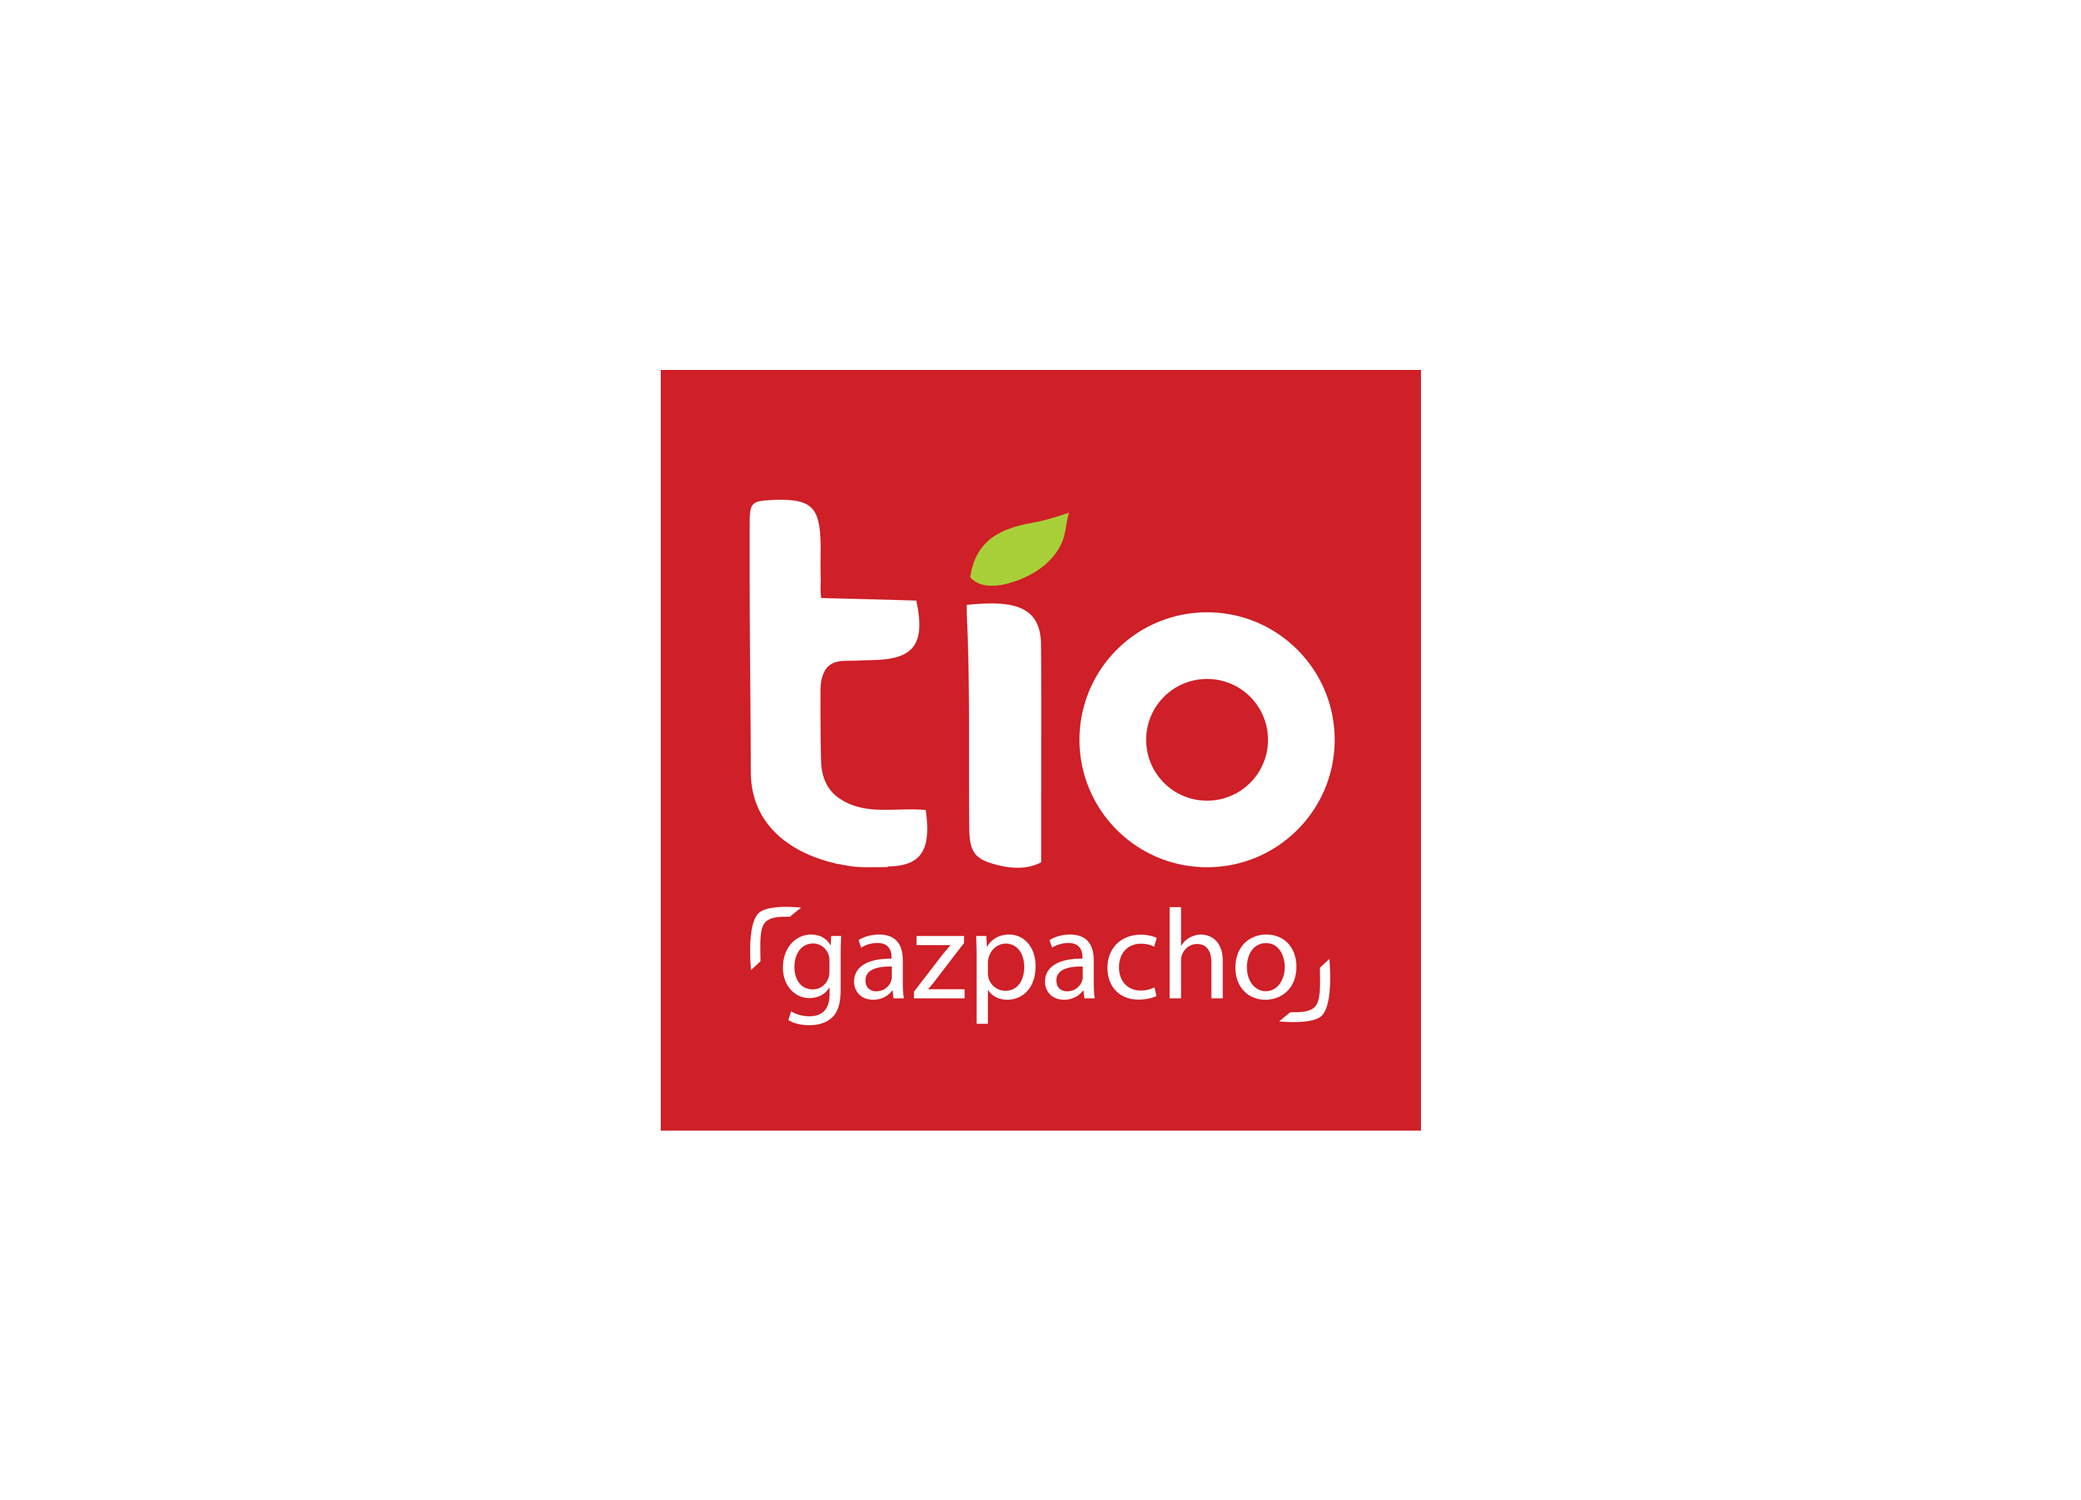 Tio Gazpacho logo design, a tomato-red square with the brand name in white sans serif and a green leaf over the I in Tio.